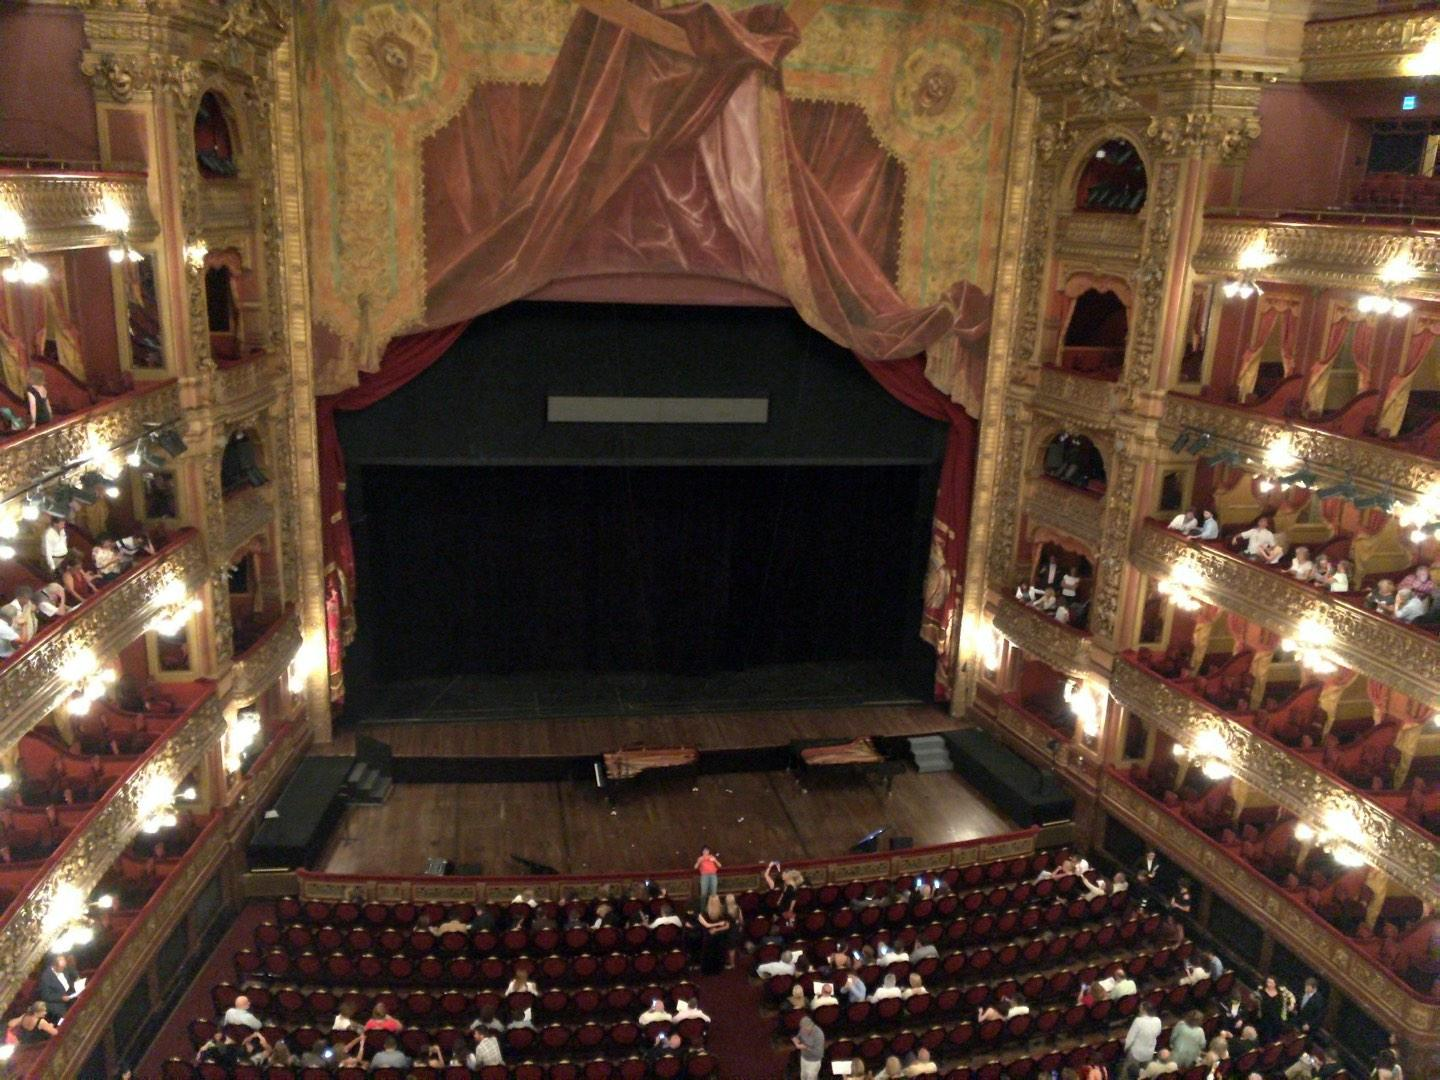 Teatro Colón Section Tertulia Centro Row 1 Seat 101